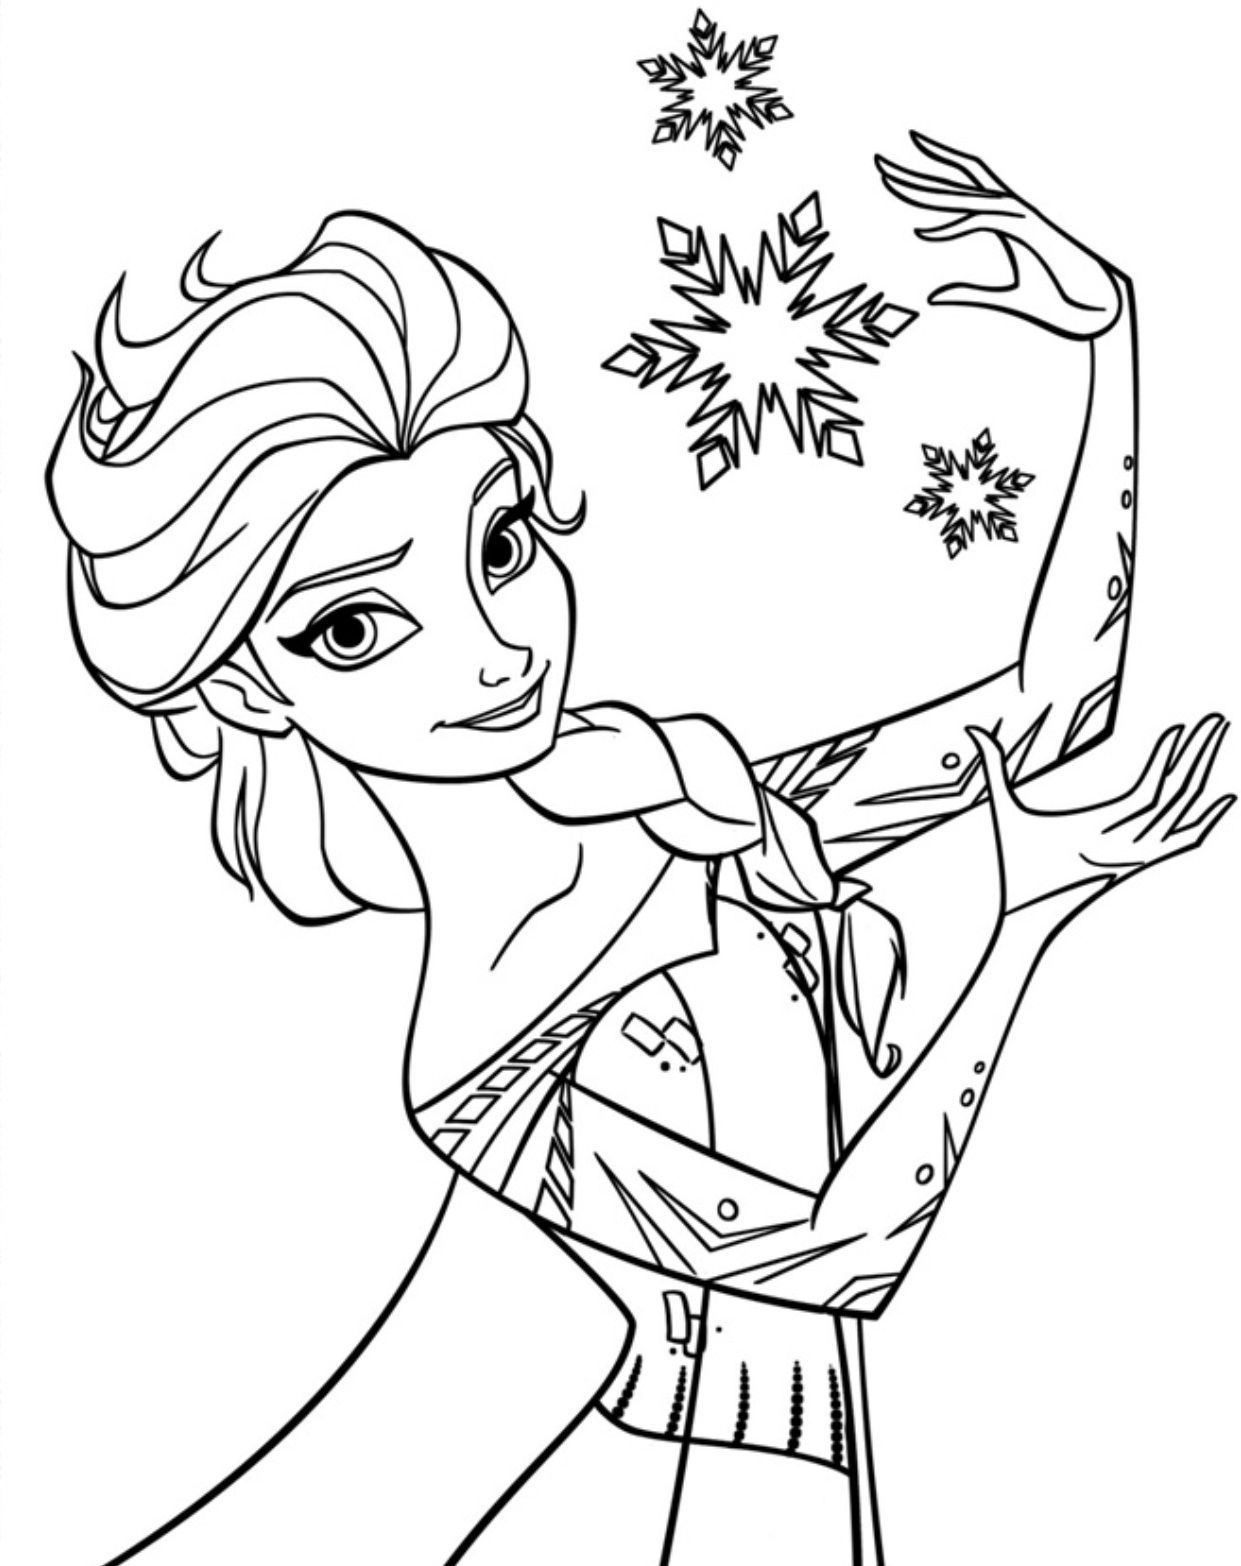 Elsa Frozen Coloring Sheets Elsa Anna Frozen Coloring Sheets Elsa Frozen Coloring Pages E Elsa Coloring Pages Disney Princess Coloring Pages Frozen Coloring